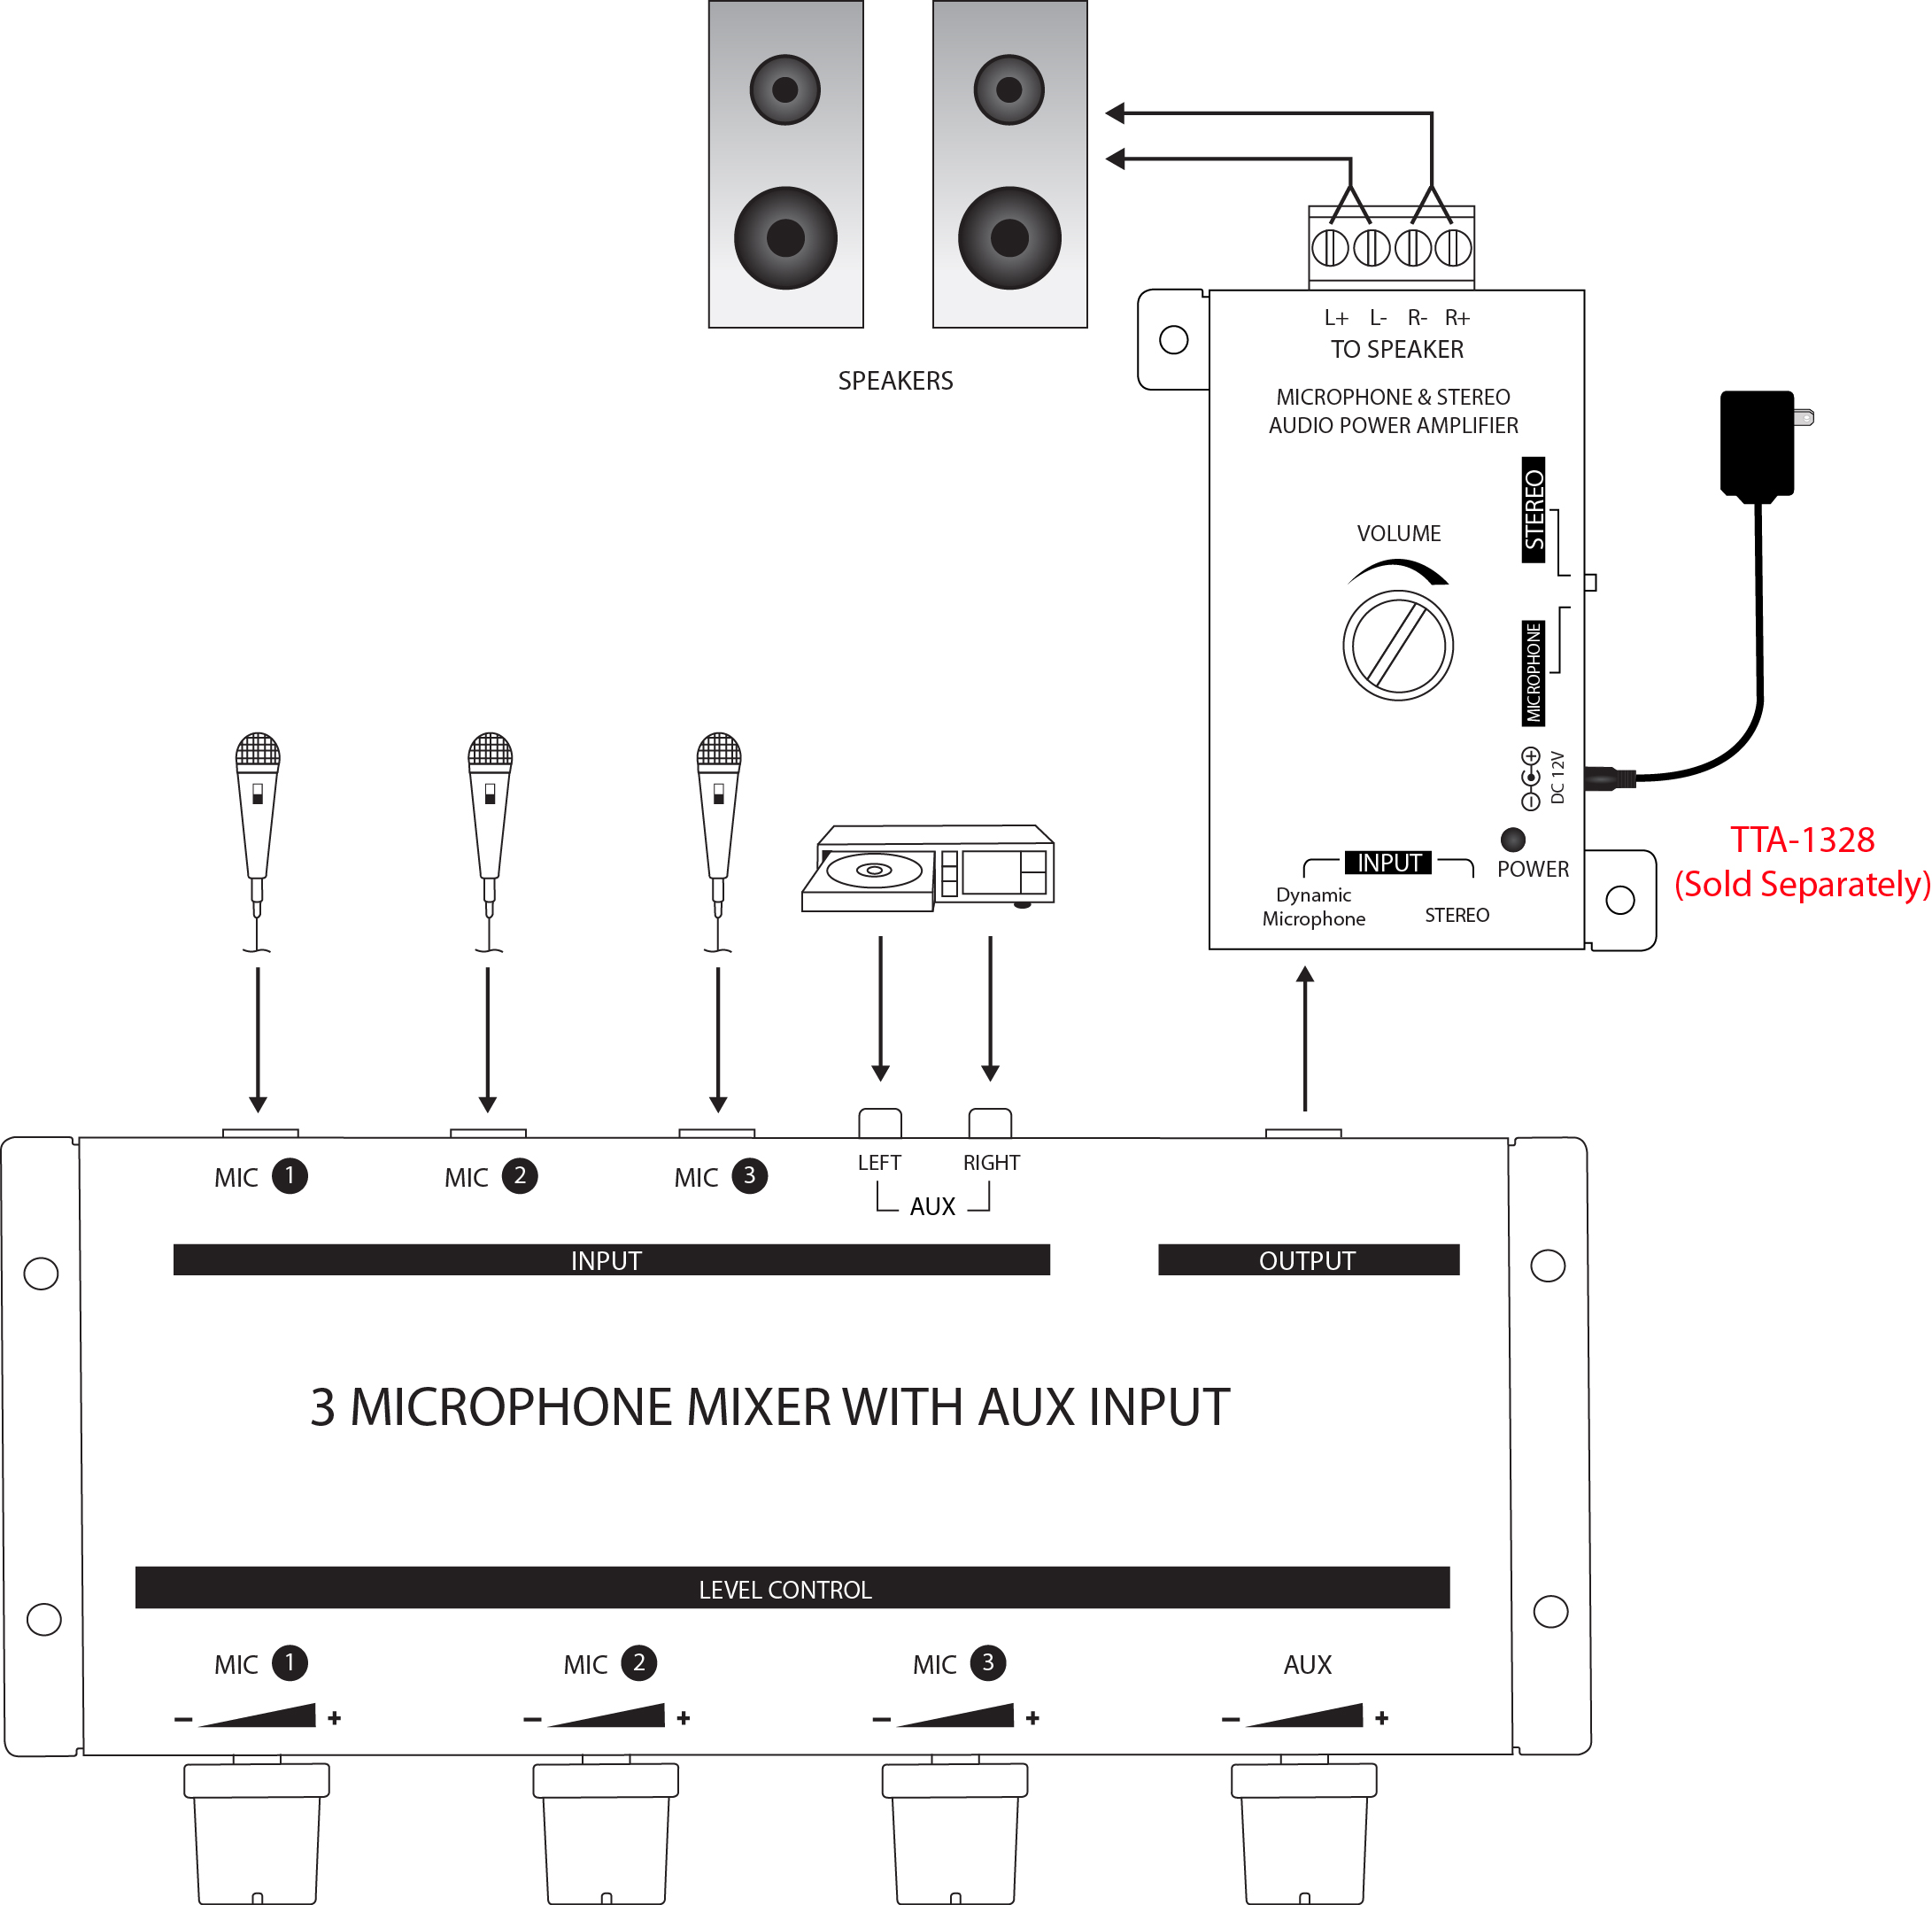 W Power  lifier Circuit further Tx A Drawing besides Discrete Virtual Ground Circuit Med moreover Bigfirst Baptist Church Ta a further Pasetup. on sound mixer diagram